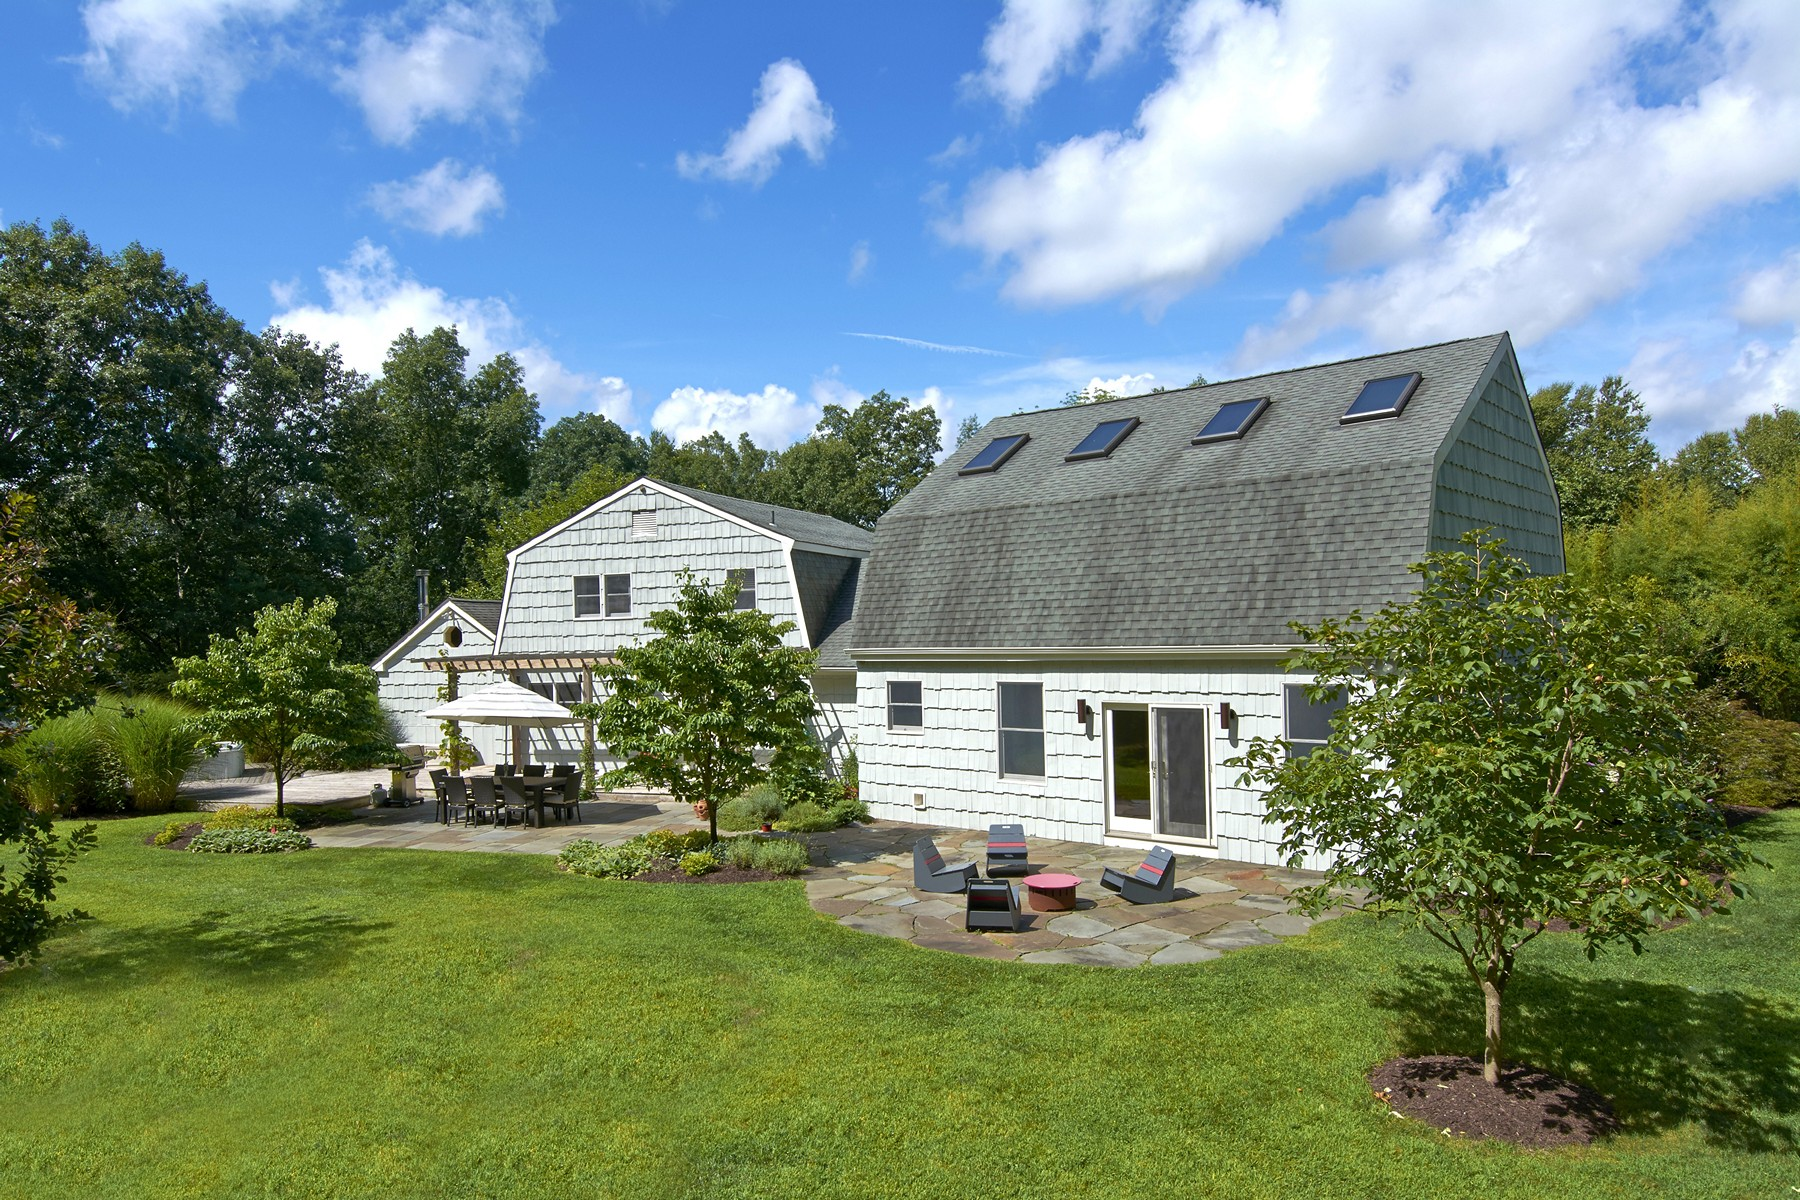 Single Family Home for Sale at Private and Serene 10 Annarock Dr Somers, New York 10589 United States